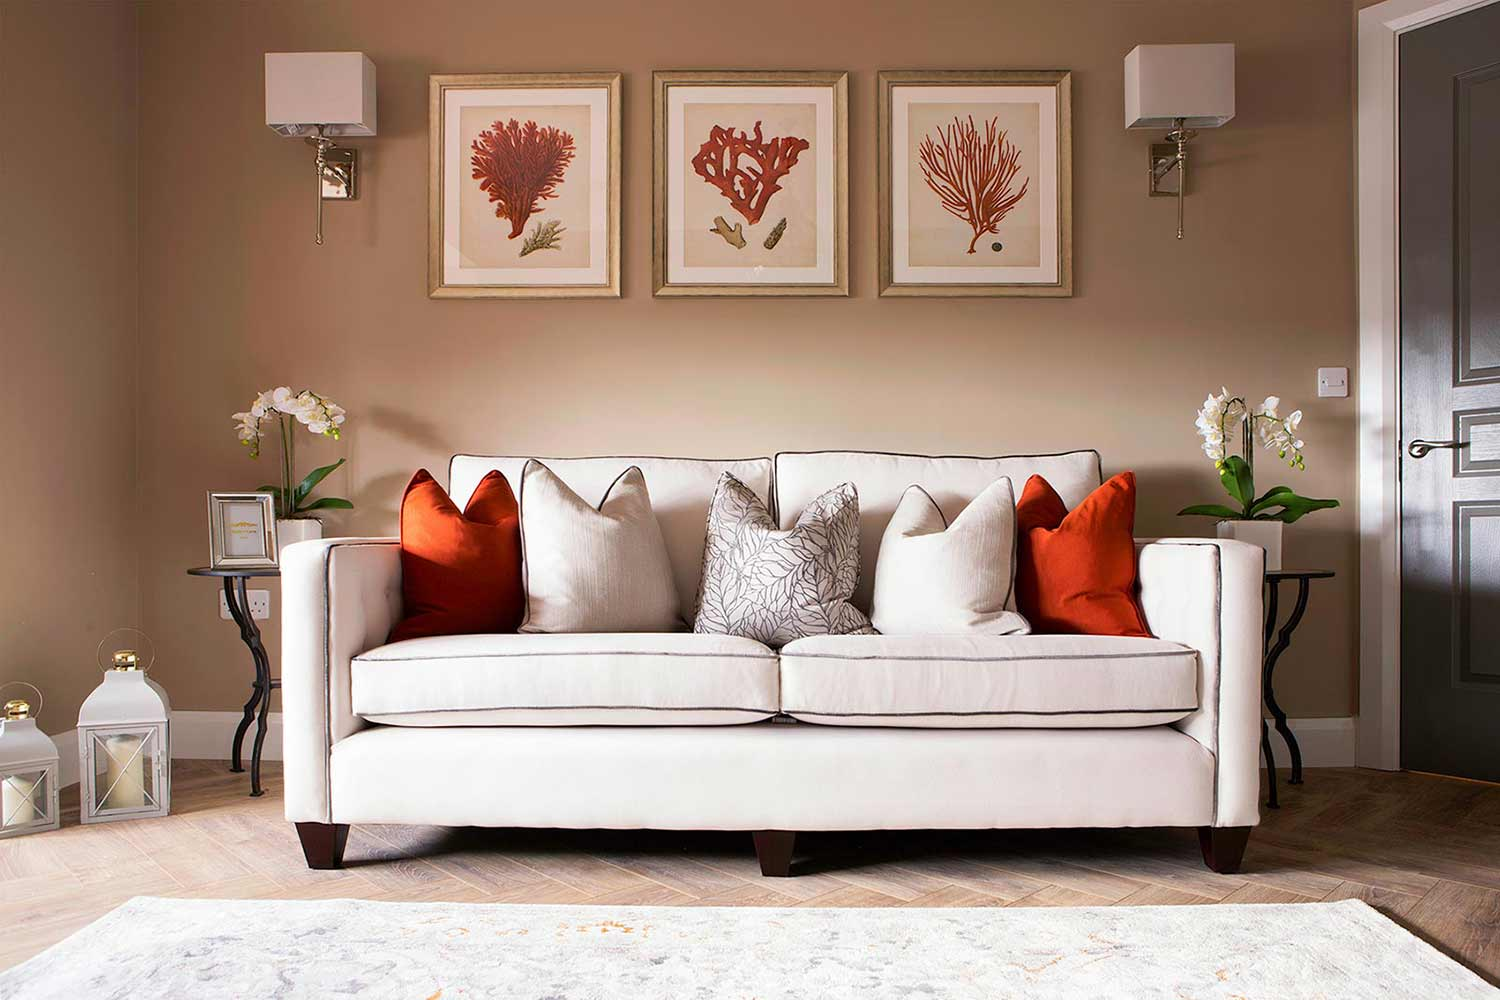 Living room sofa interior design